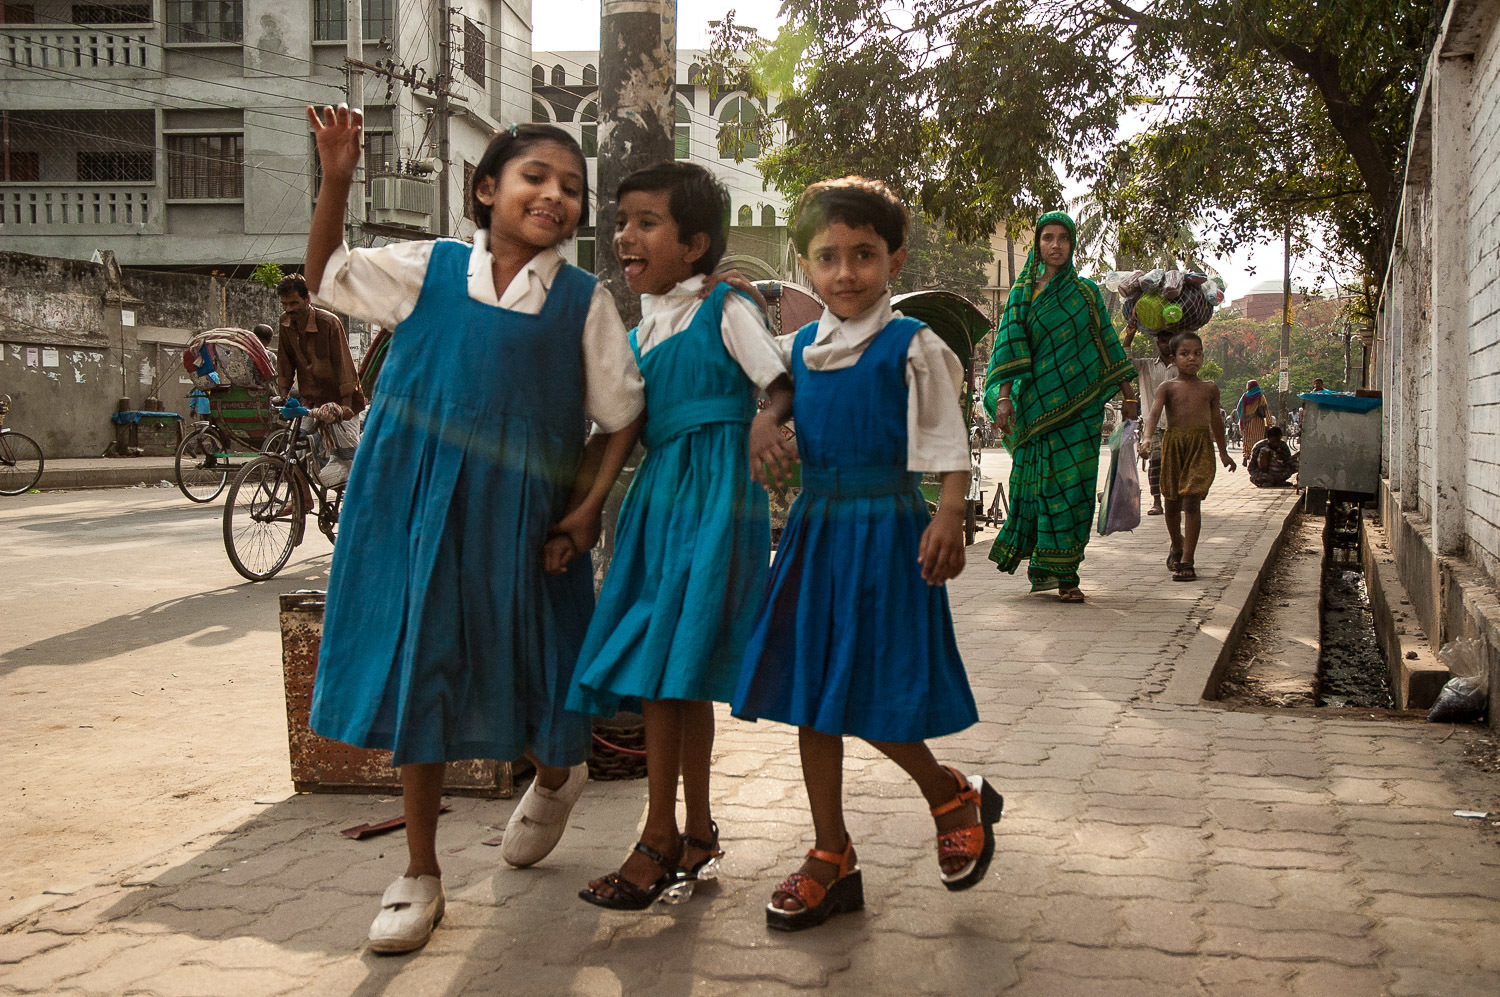 Children returning from school, Dhaka, Bangladesh, April 26, 2007.